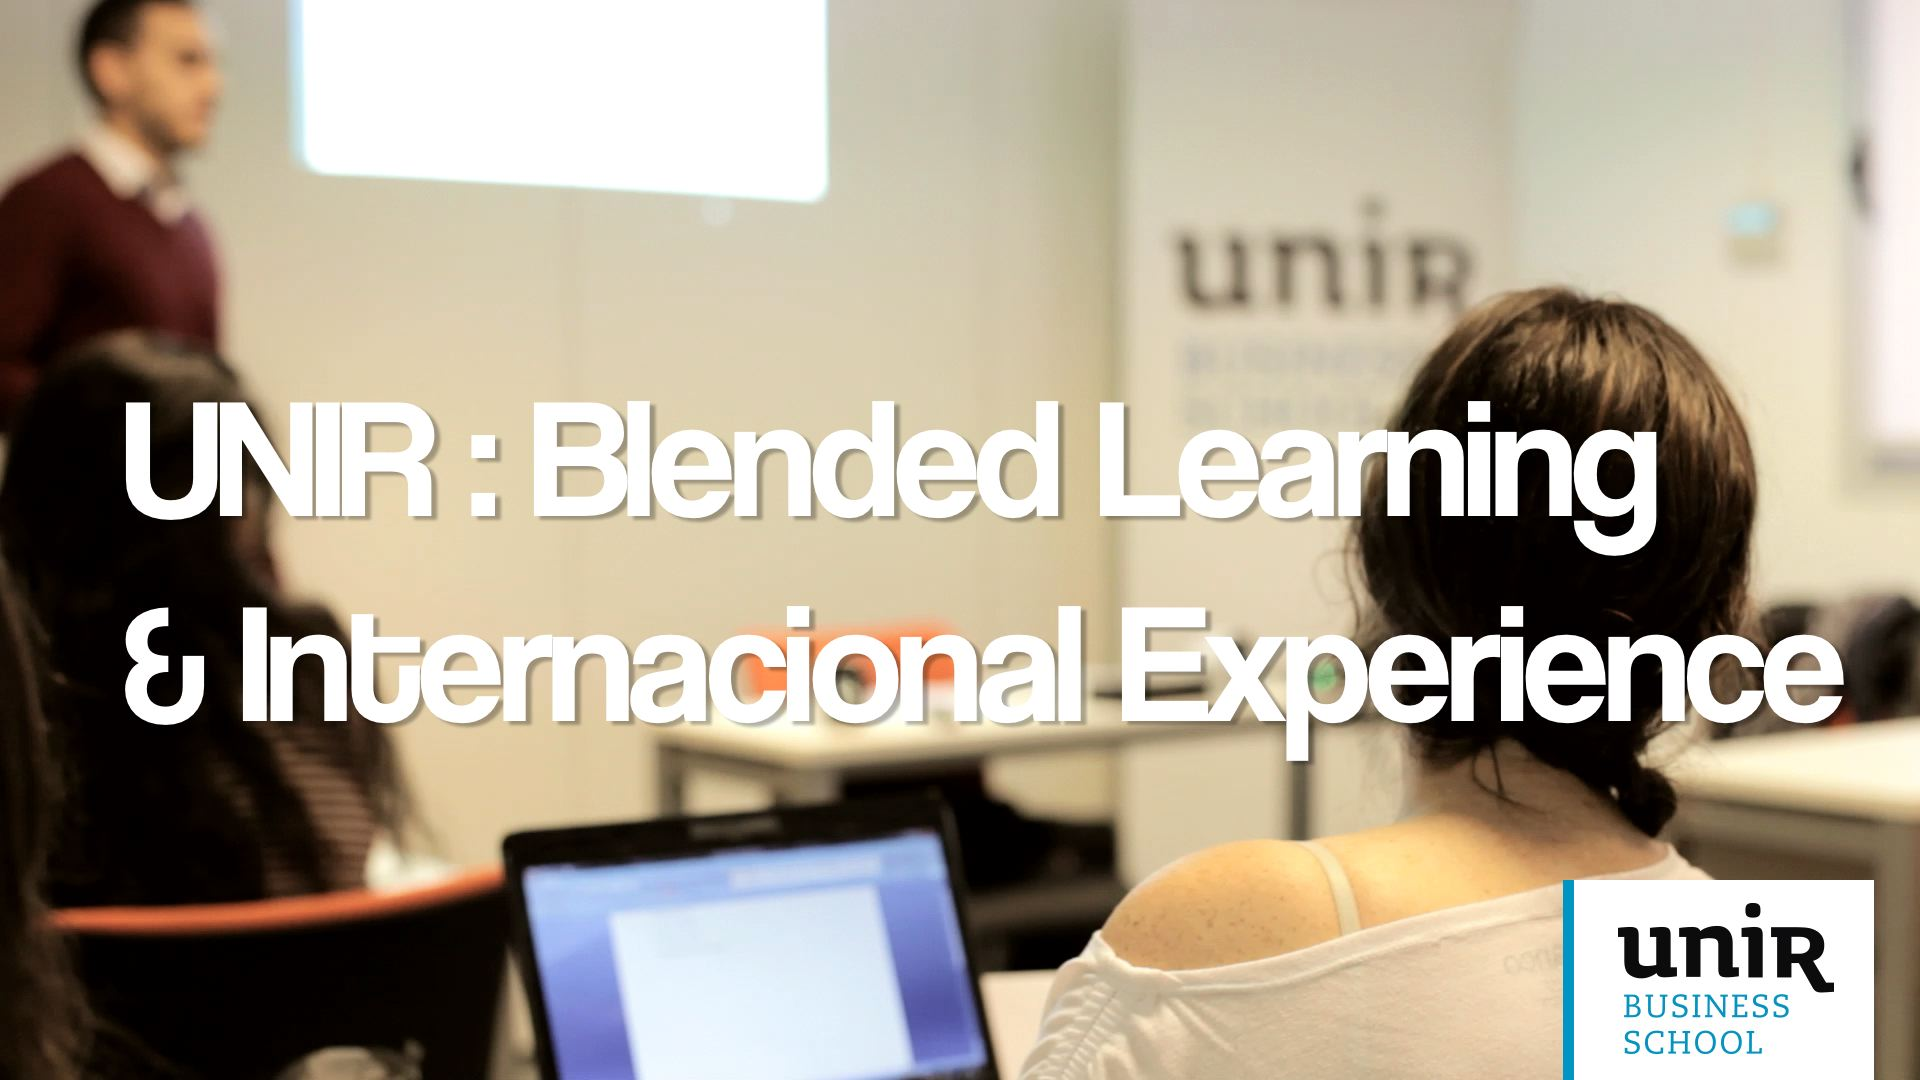 UNIRBLENDED-LEARNING--INTERNATIONAL-EXPERIENCE